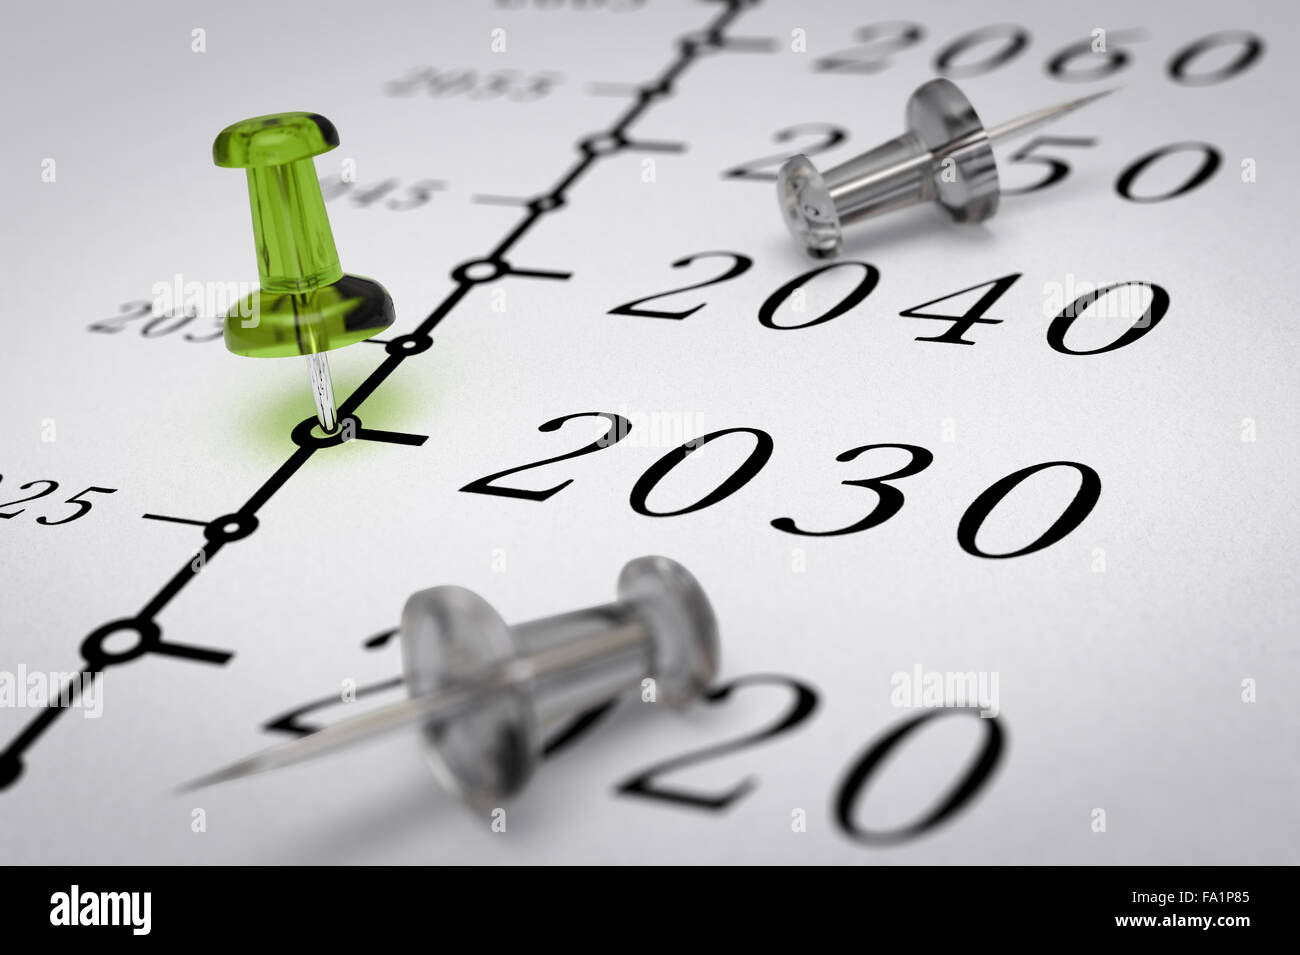 Year 2030 written on a paper with a green pushpin, concept image for business vision or long term prospective. Number - Stock Image